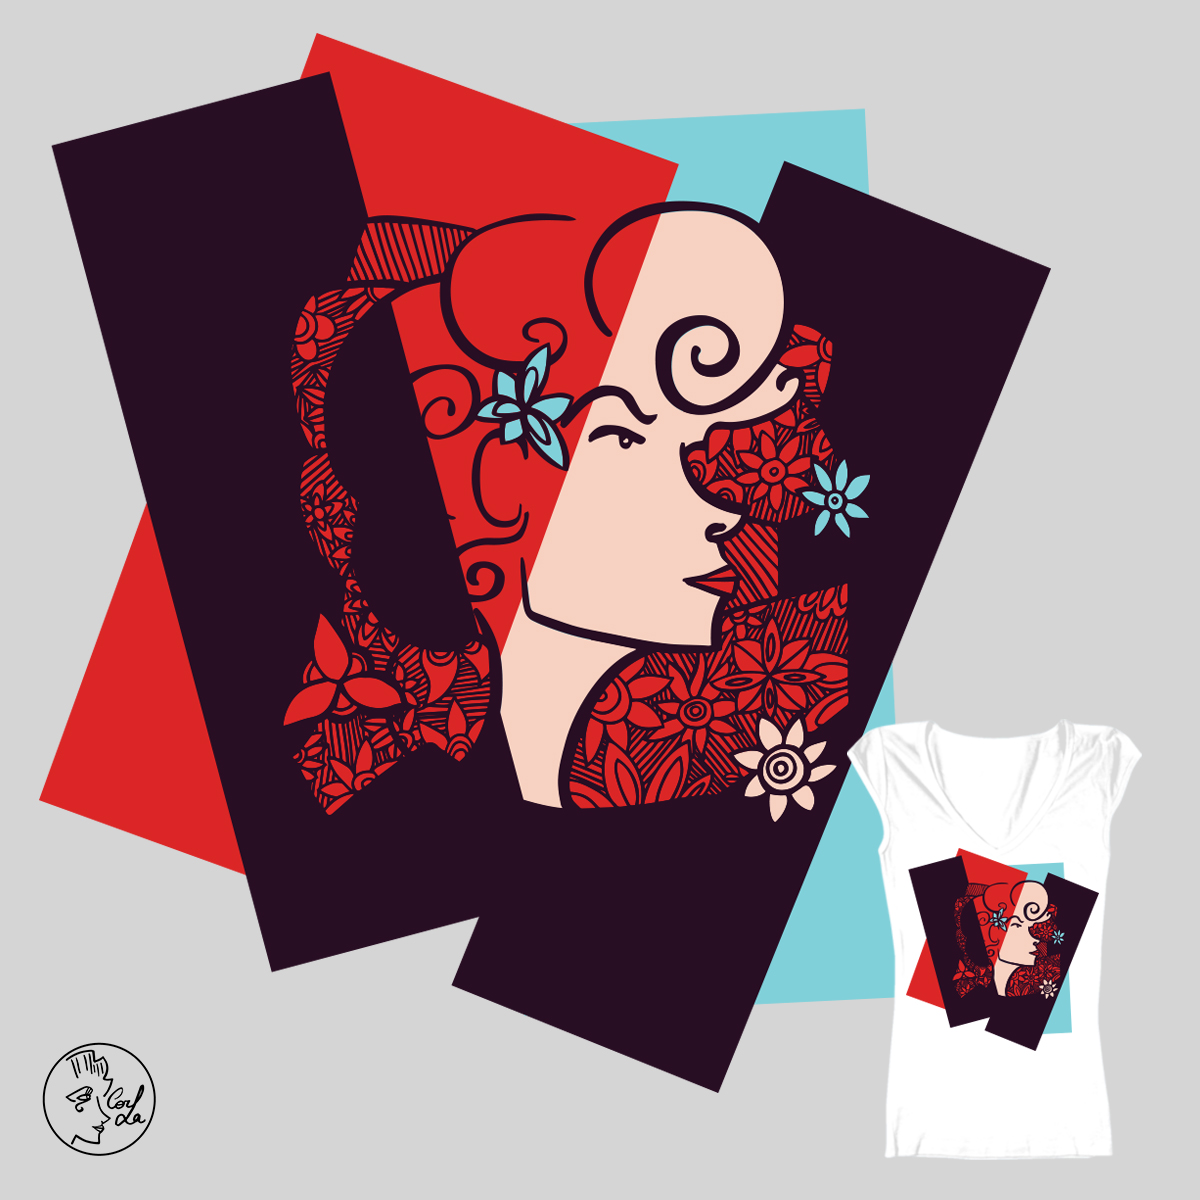 Cubism for Threadless Challenge